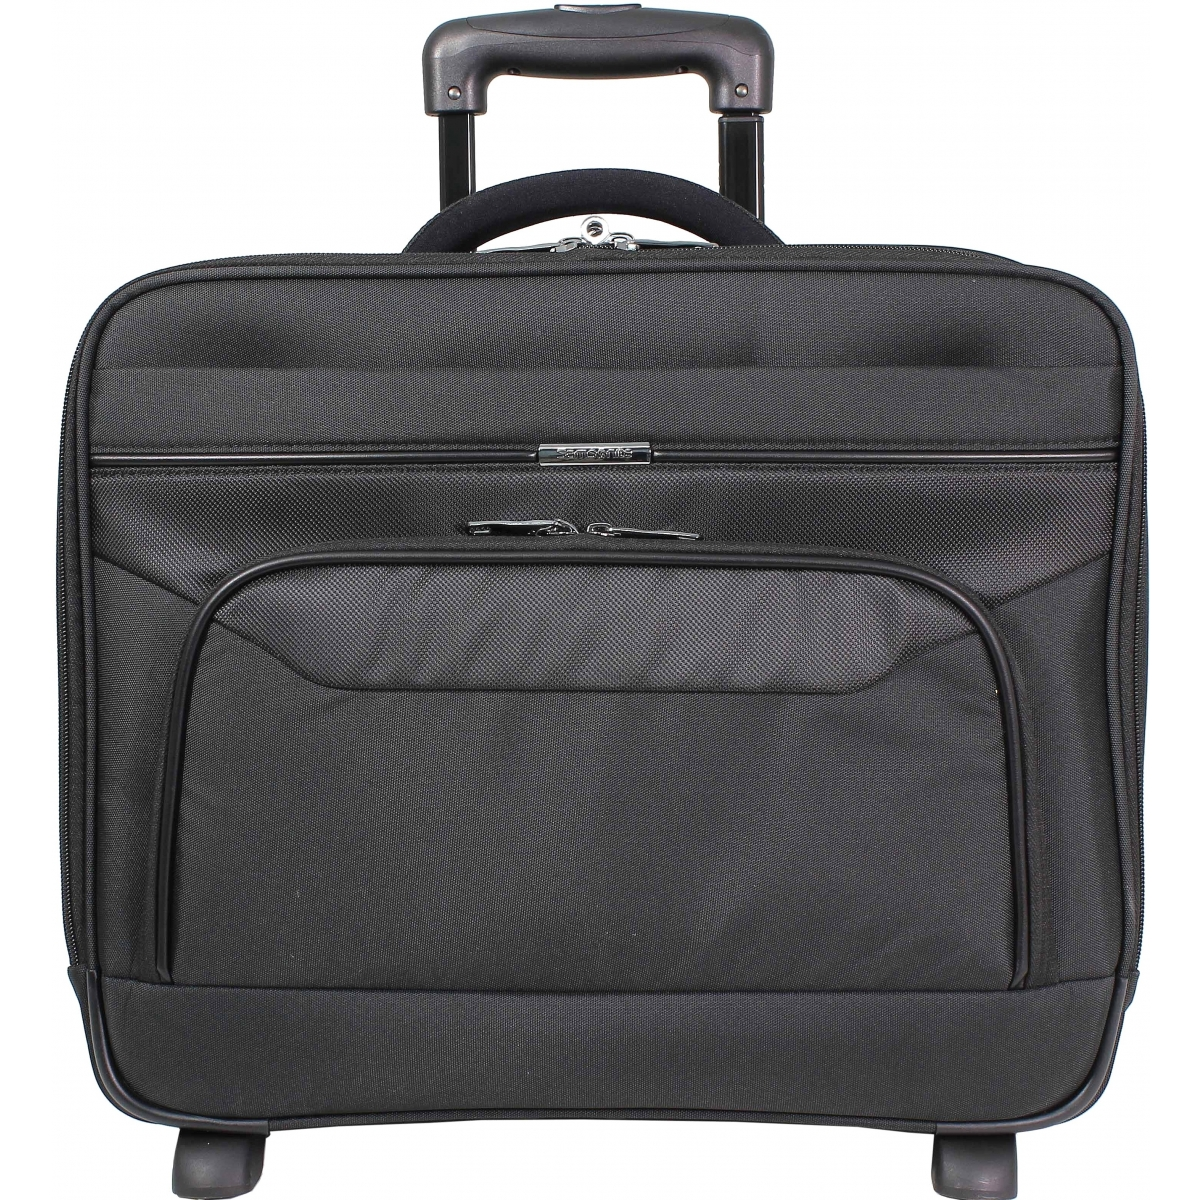 pilot case porte ordinateur samsonite desklite 15 6 desklite16 couleur principale noir. Black Bedroom Furniture Sets. Home Design Ideas